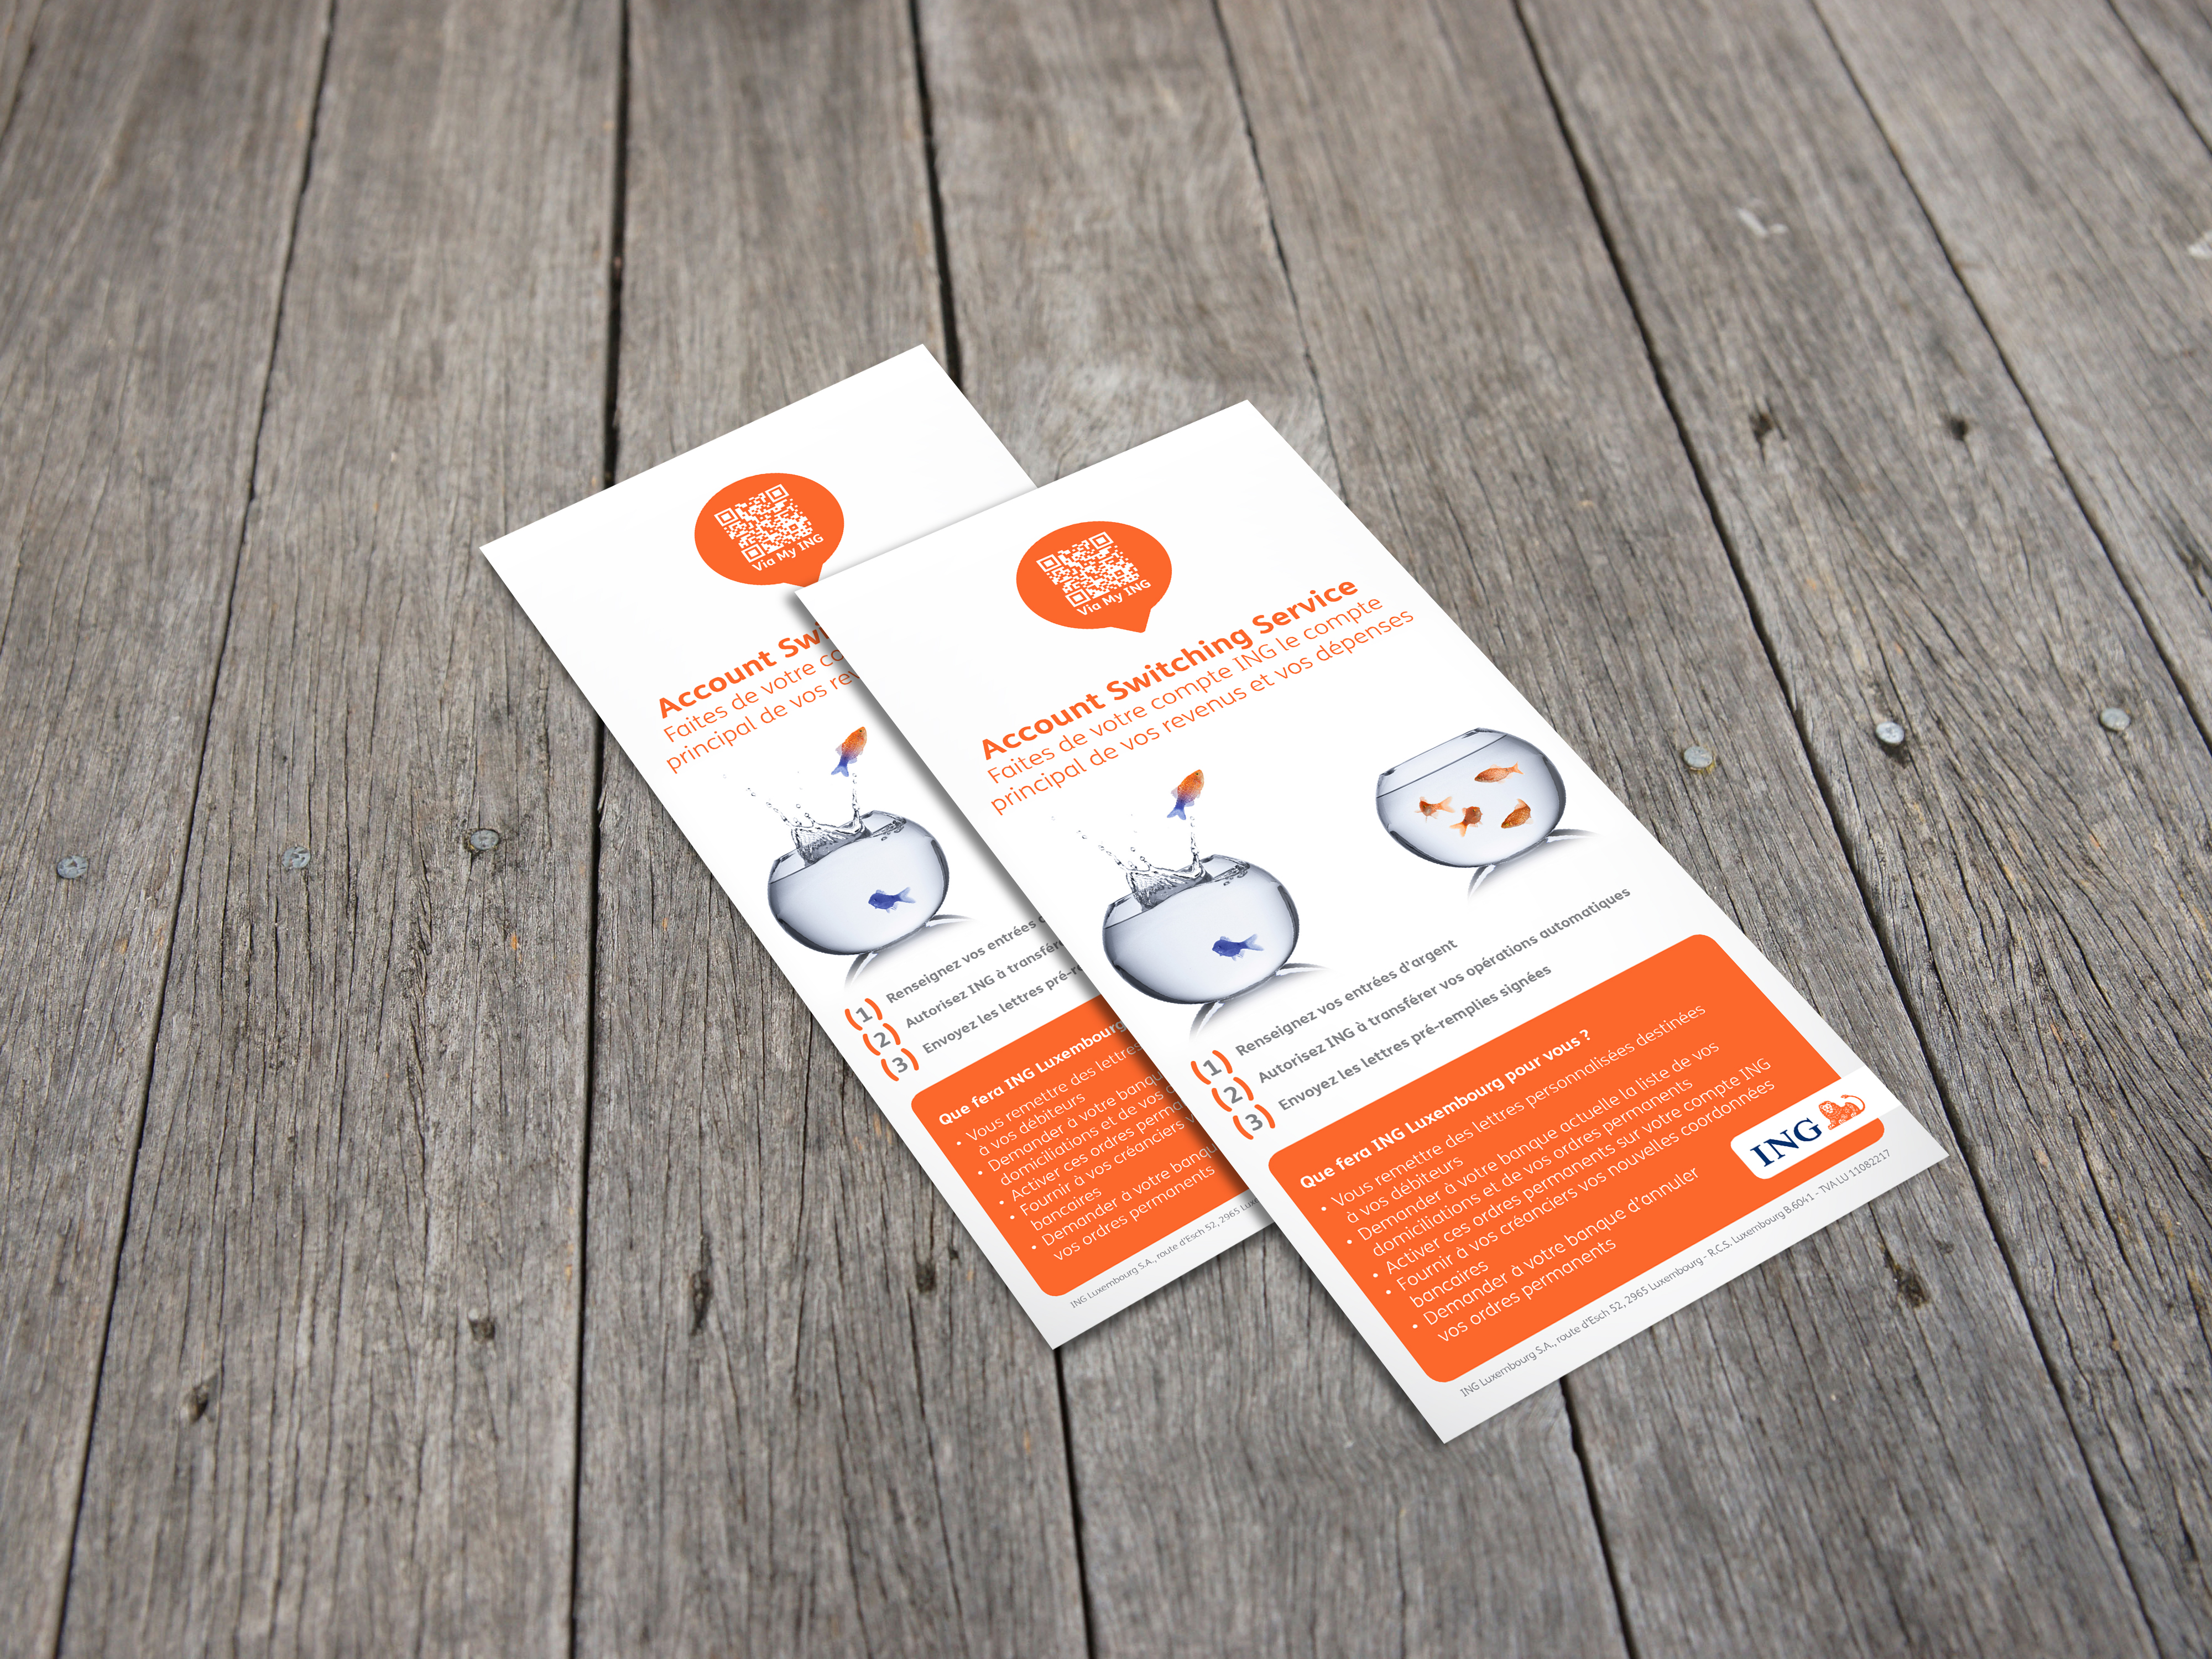 ING_switch_flyer